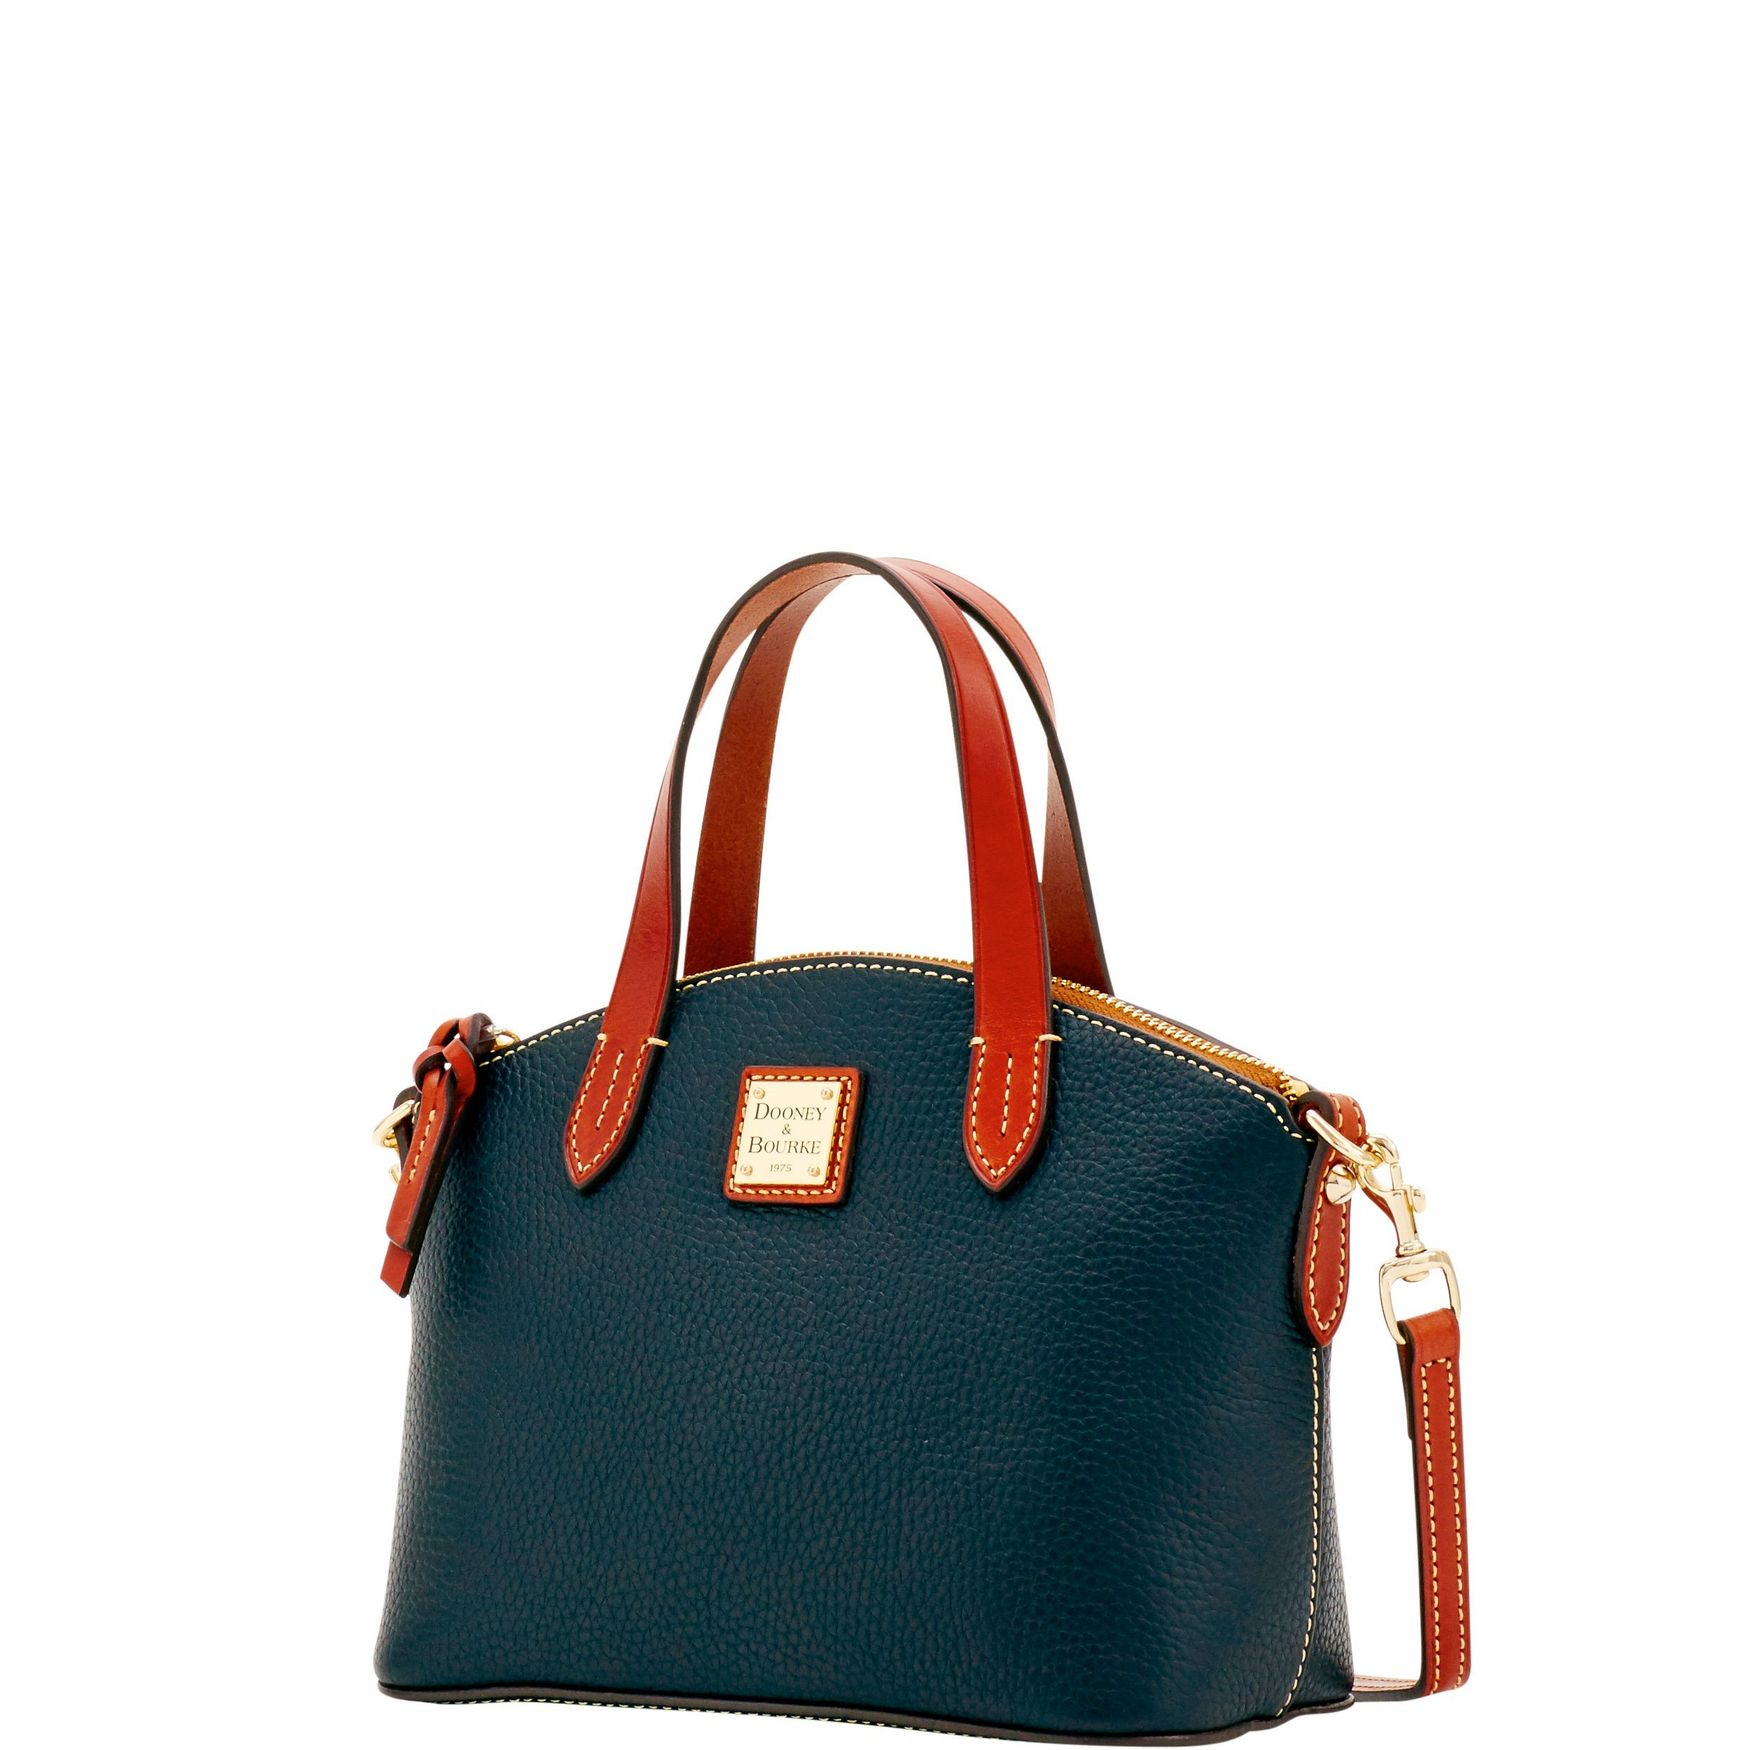 Dooney-amp-Bourke-Pebble-Grain-Ruby-Top-Handle-Bag thumbnail 9